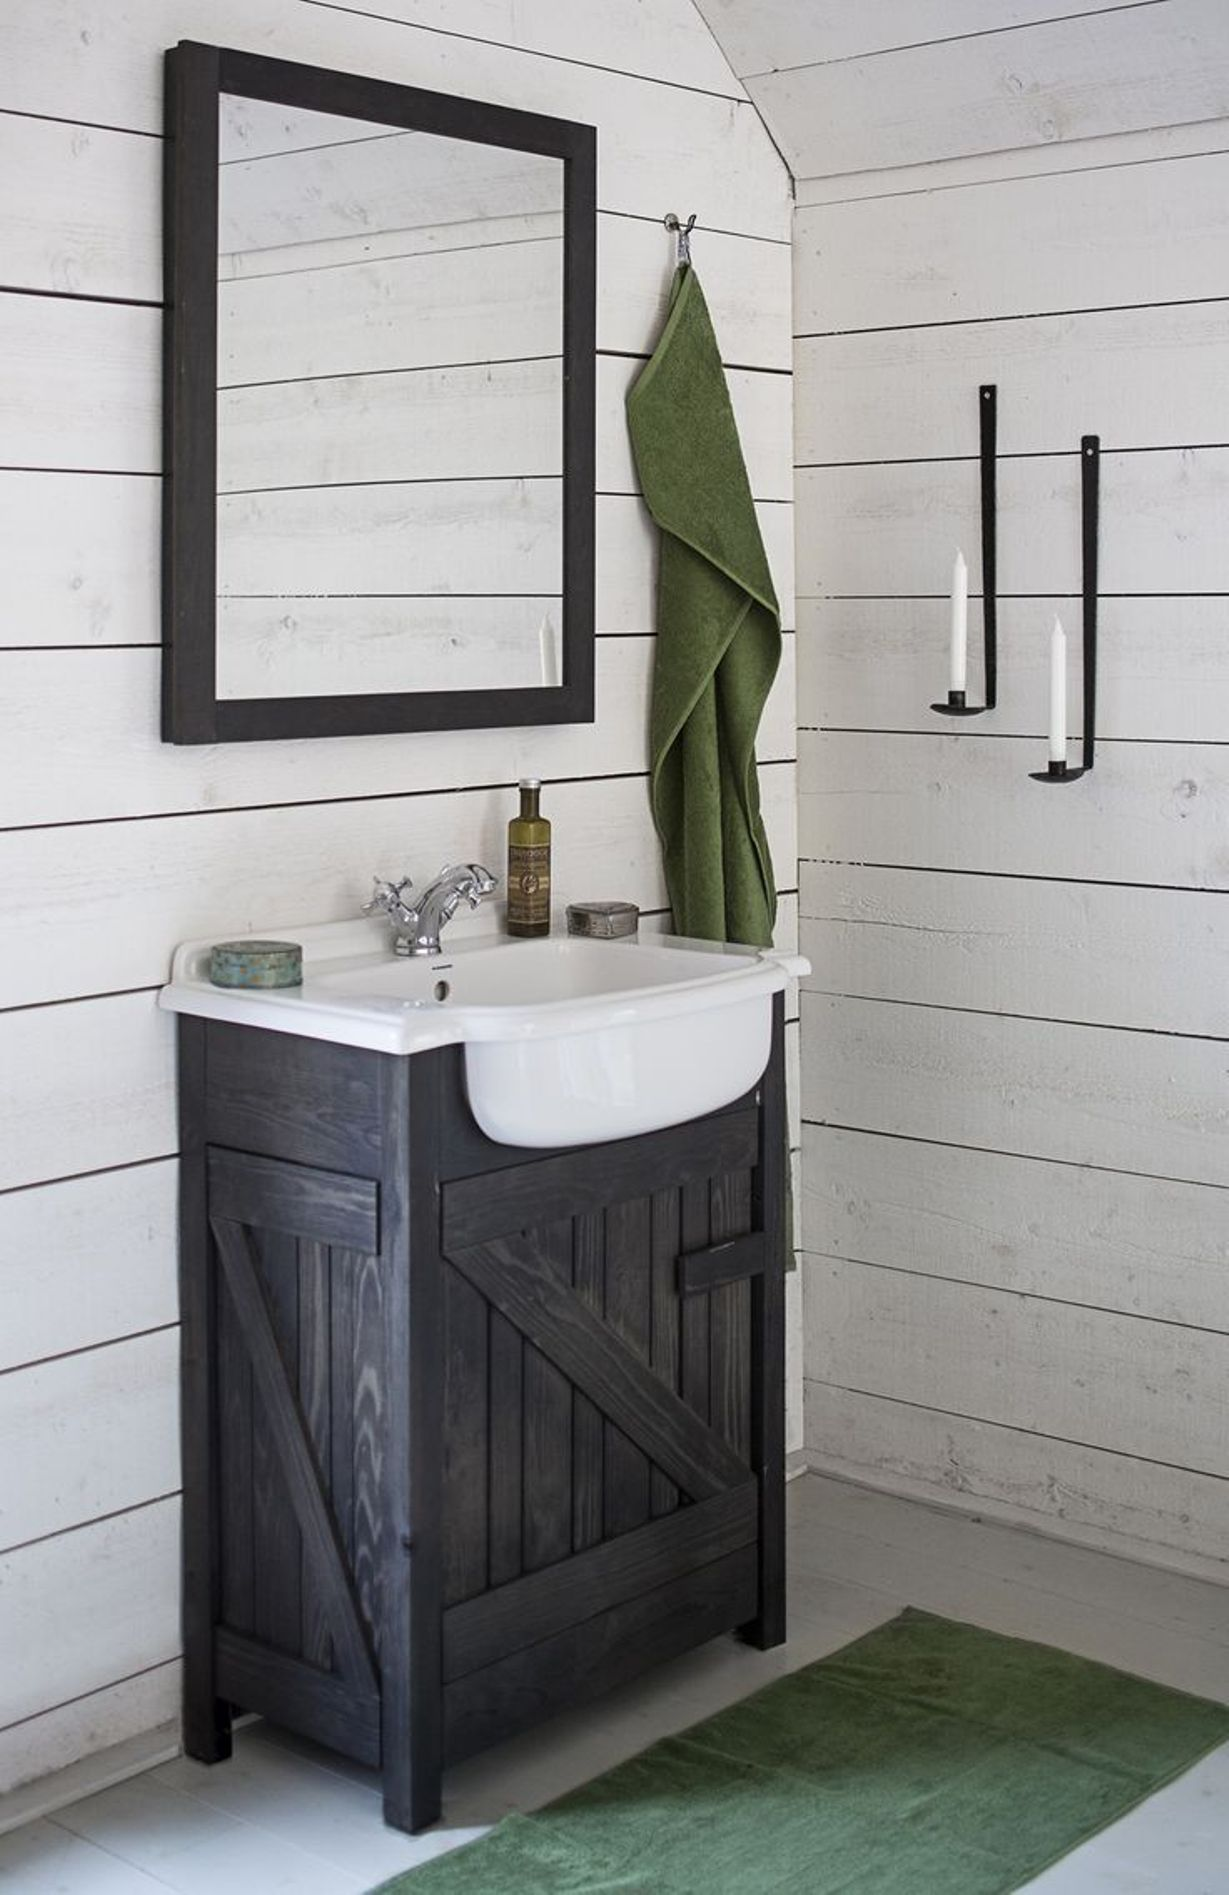 Bathroom elegant rustic bathroom vanities small rustic bathroom vanities with black color and white sink and white wood paneling